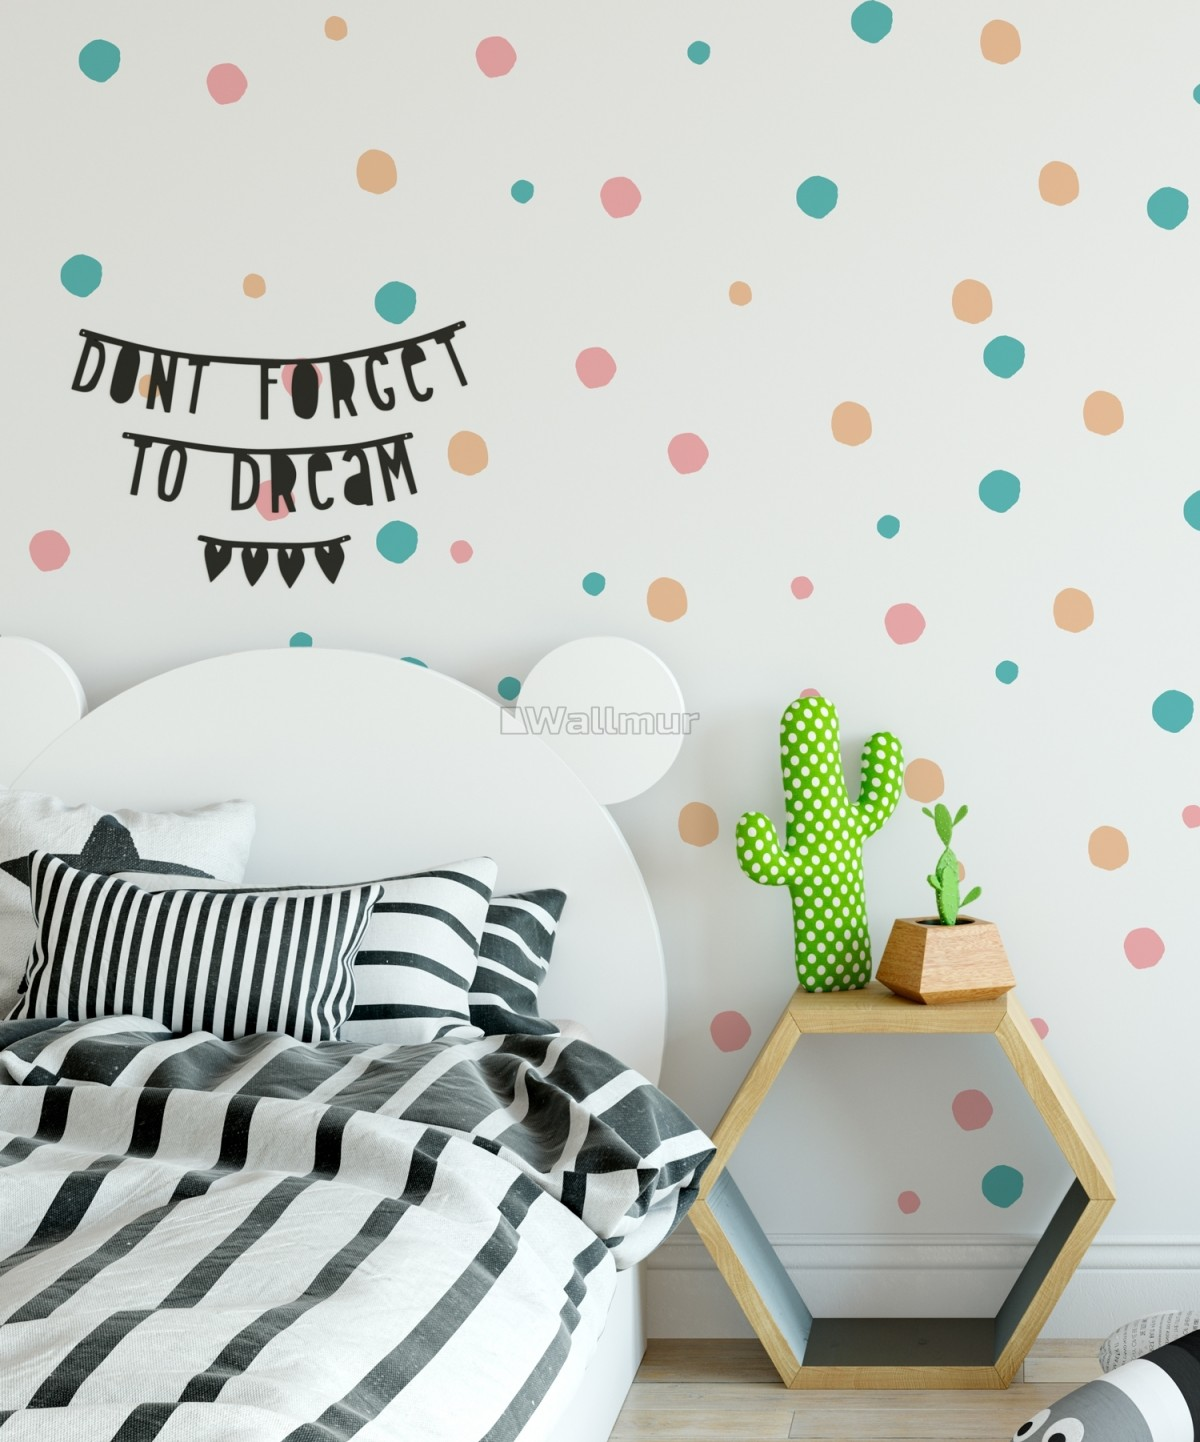 Pink Blue Colorful Doodle Polka Dots Wall Decal Sticker Wallmur